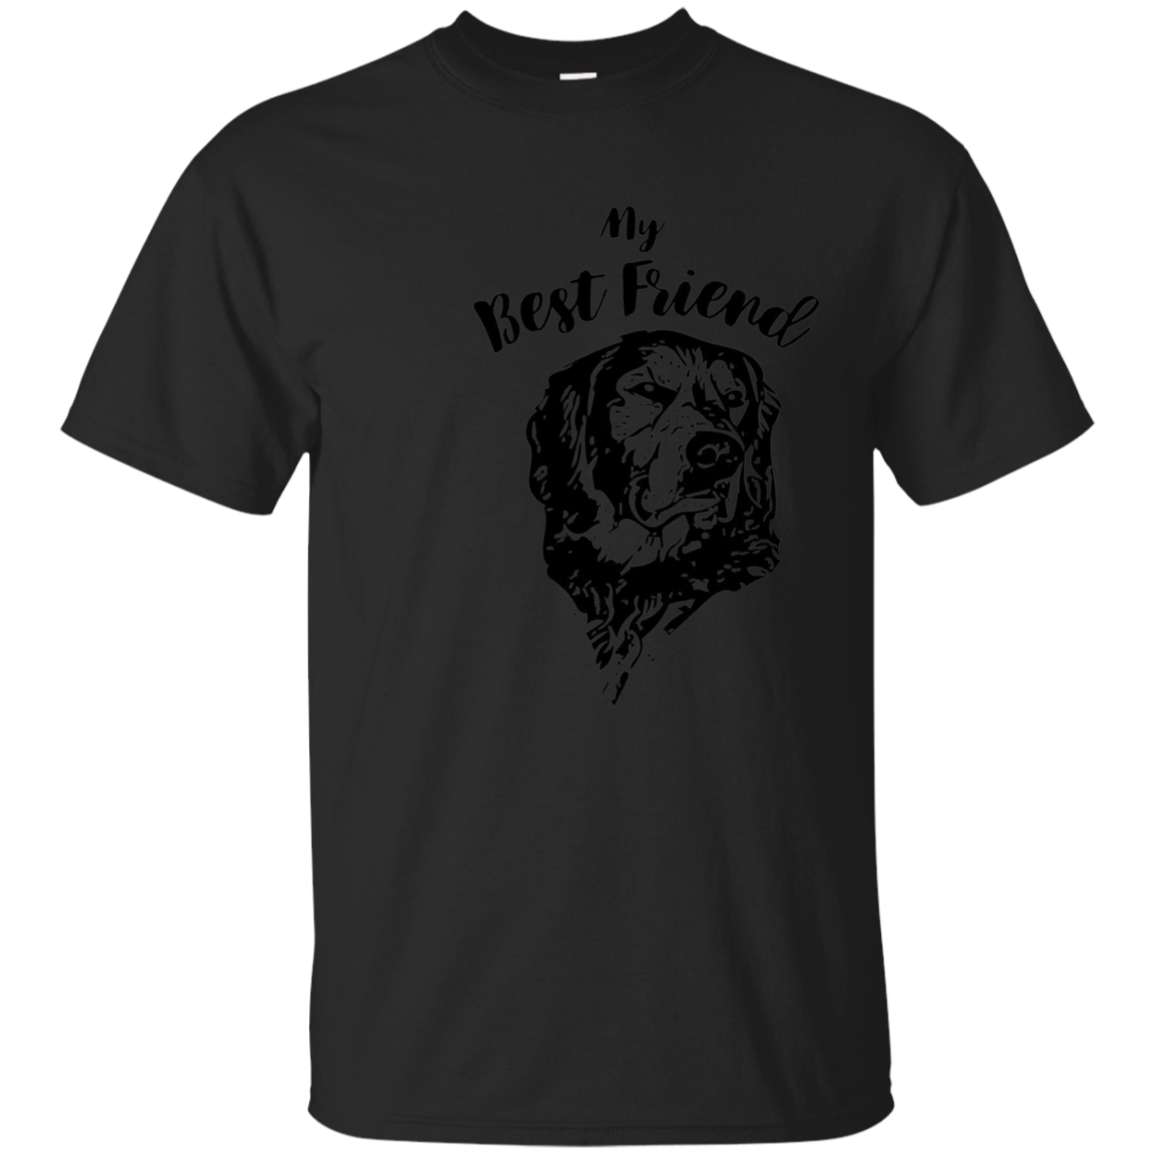 Best Friend t-shirt Golden Retriever shirt DogTee shirt